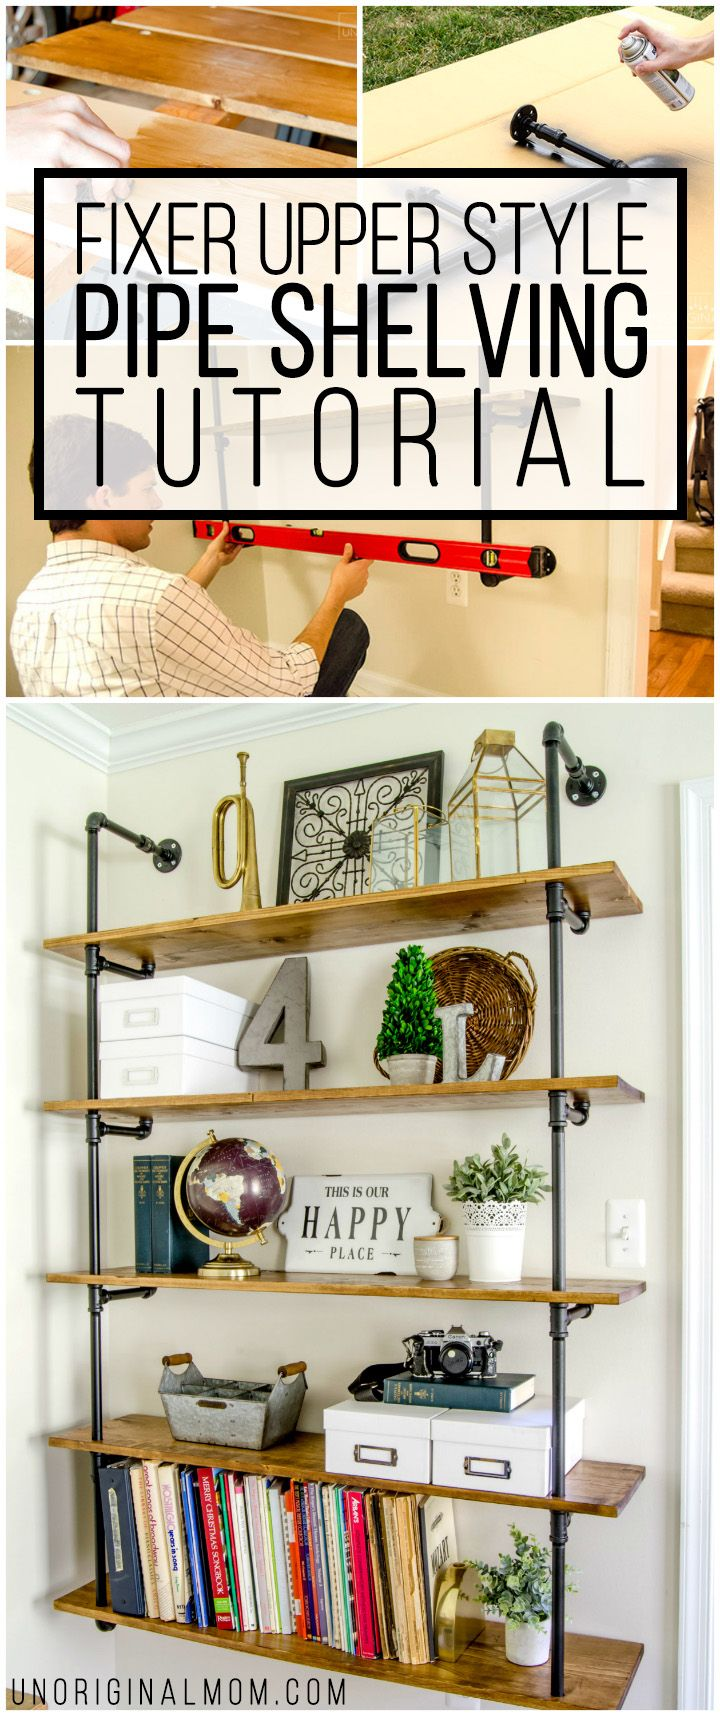 Really detailed step-by-step tutorial to make your own industrial pipe shelving - this is an affordable and fun way to get the Joanna Gaines Fixer Upper style in your own home! #DIY #decor #upcycling http://www.unoriginalmom.com/diy-fixer-upper-pipe-shelving-tutorial/